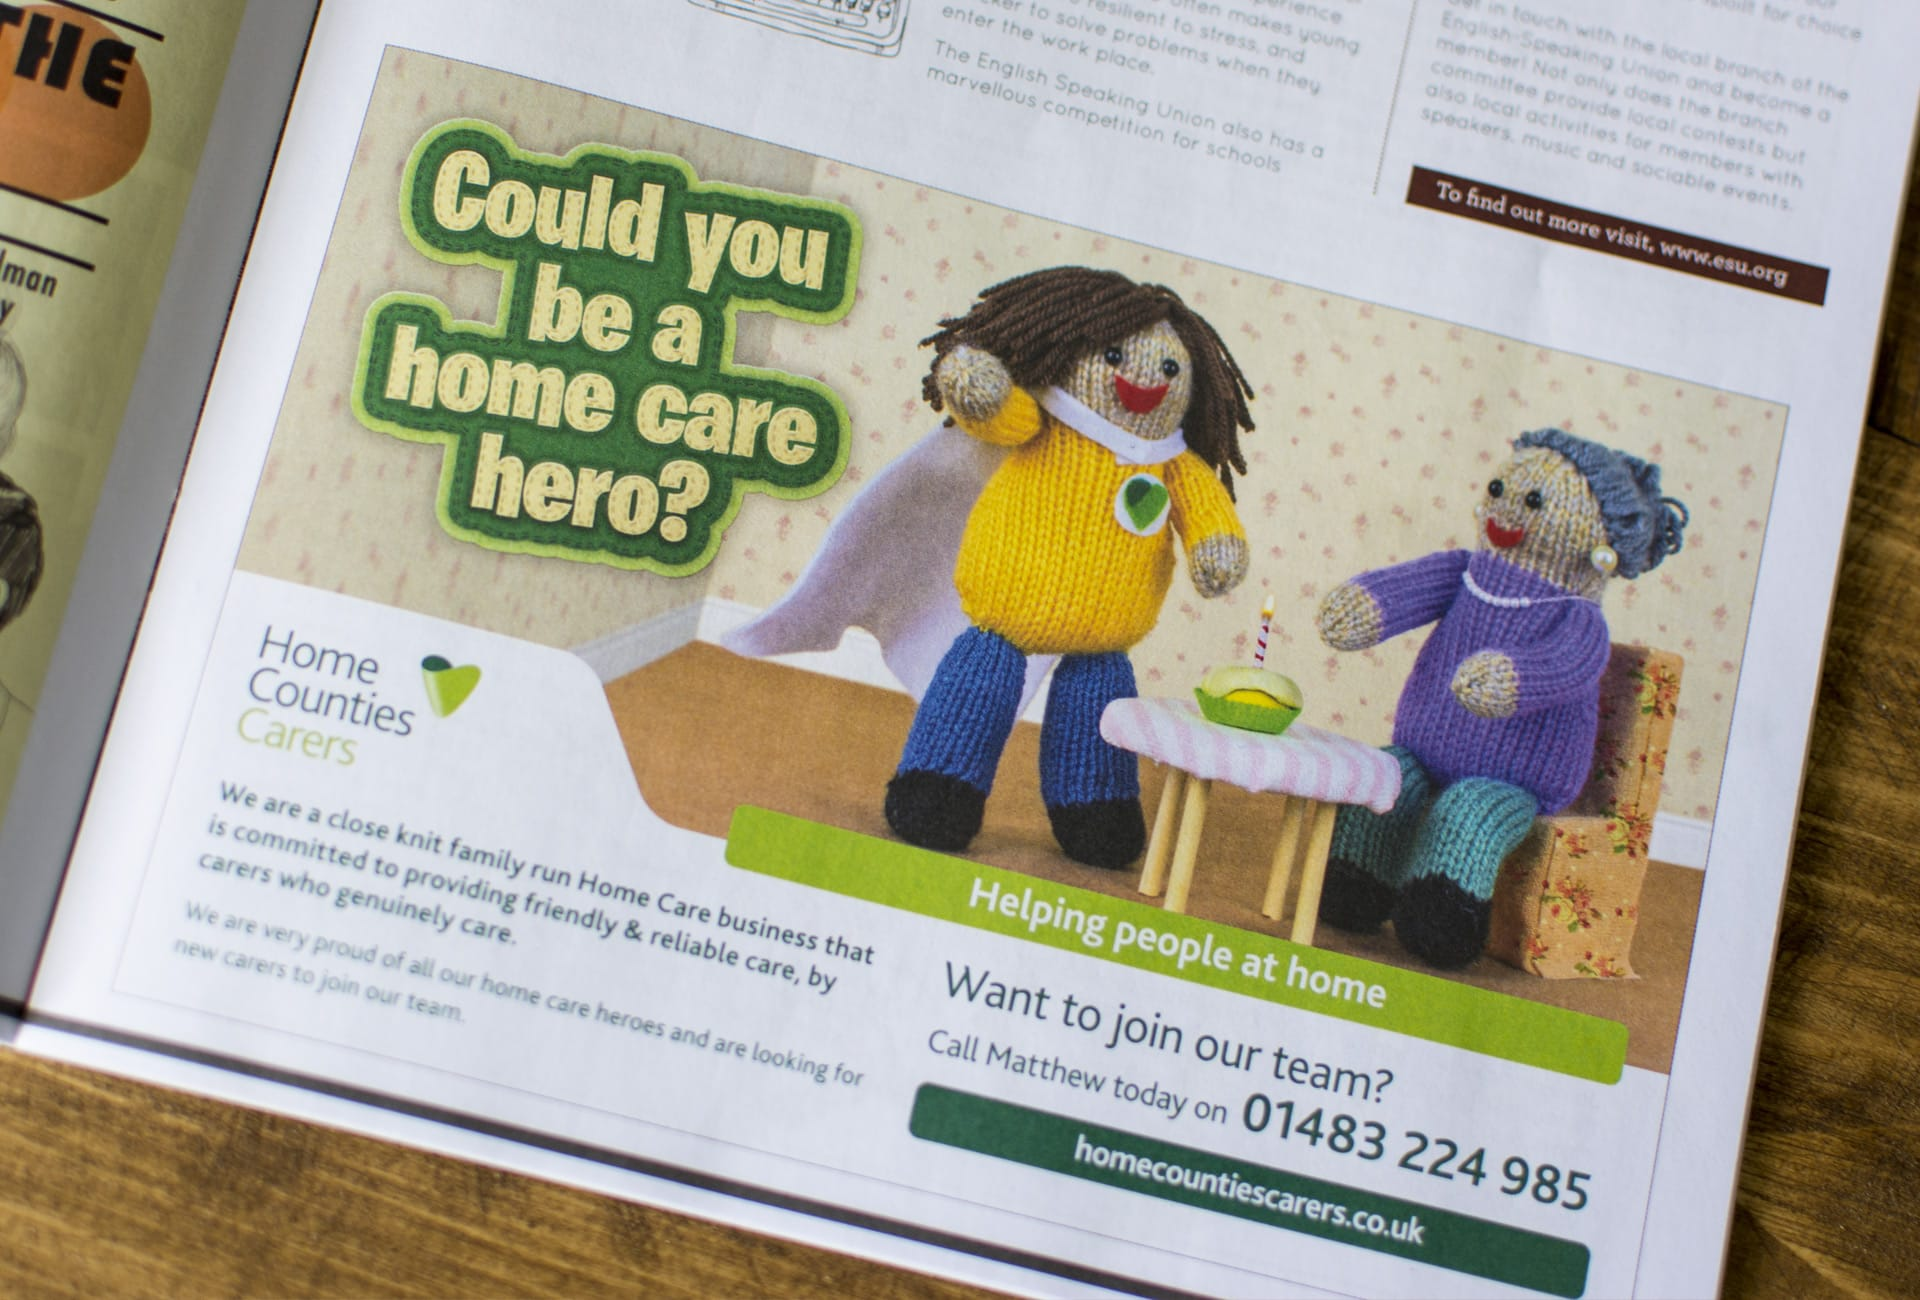 Home Counties Carers: Advertising - Could you be a home care hero?